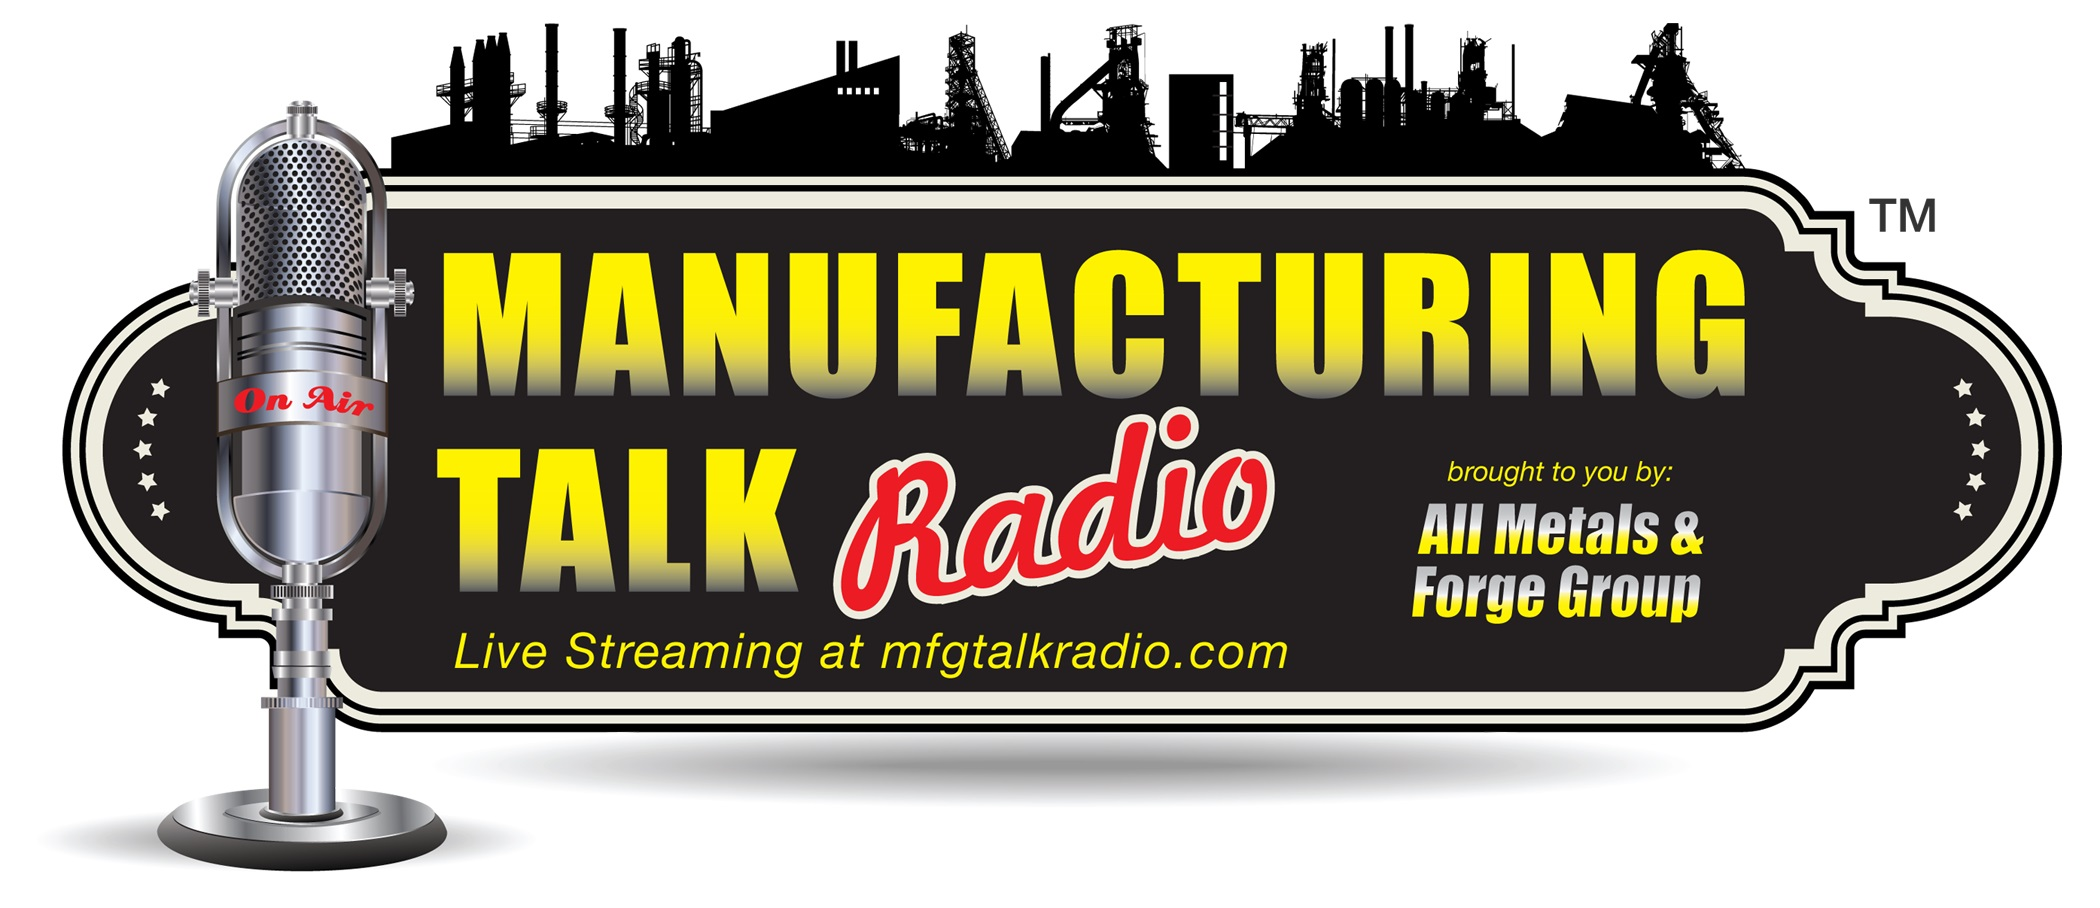 Manufacturing Talk Radio, sponsored by All Metals